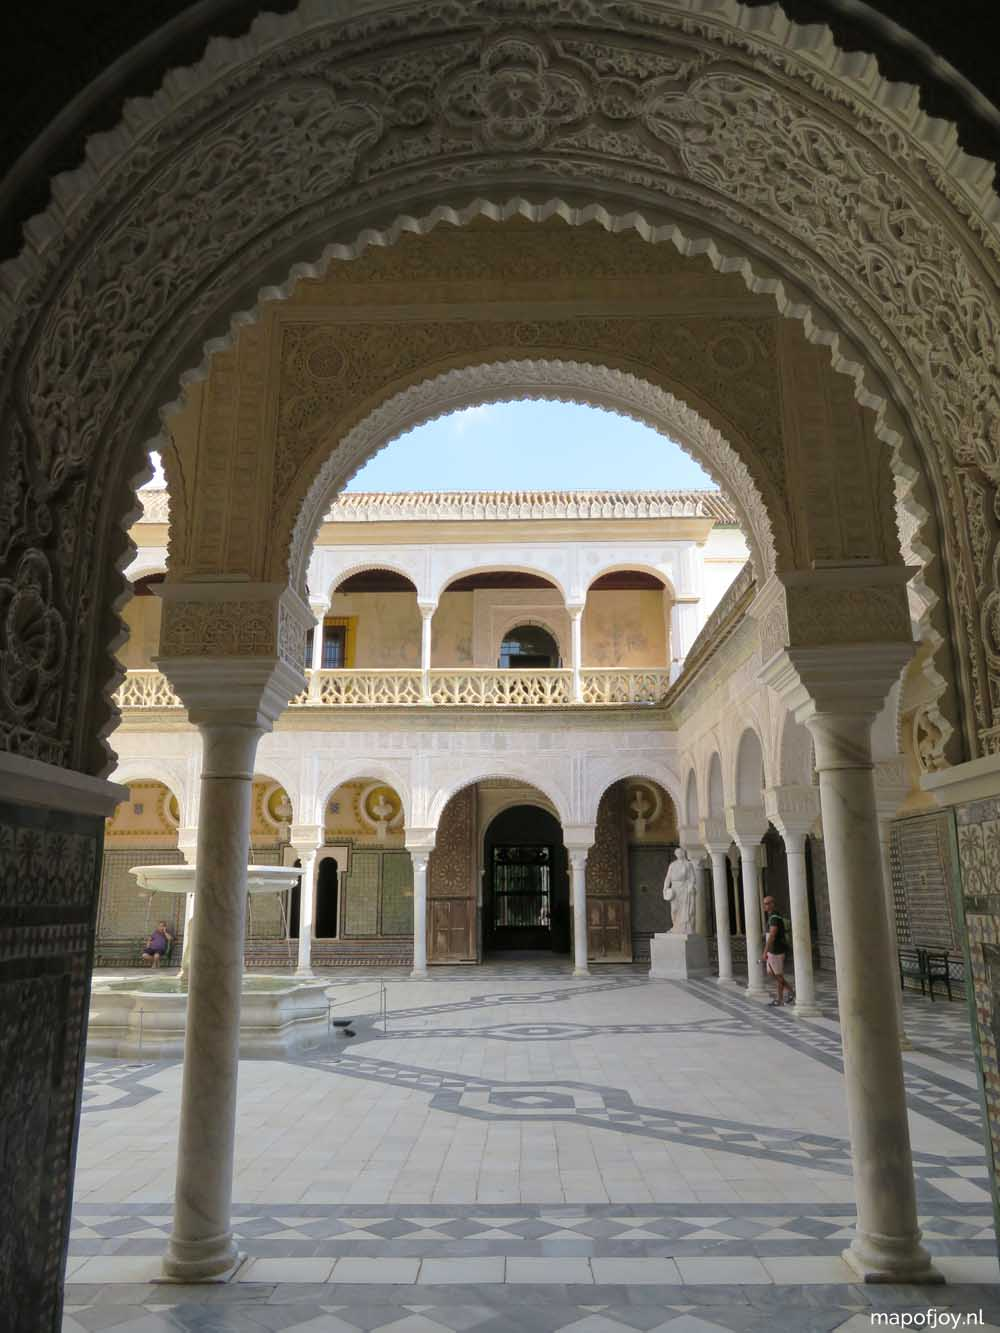 Casa de Pilatos, Sevilla - Map of Joy